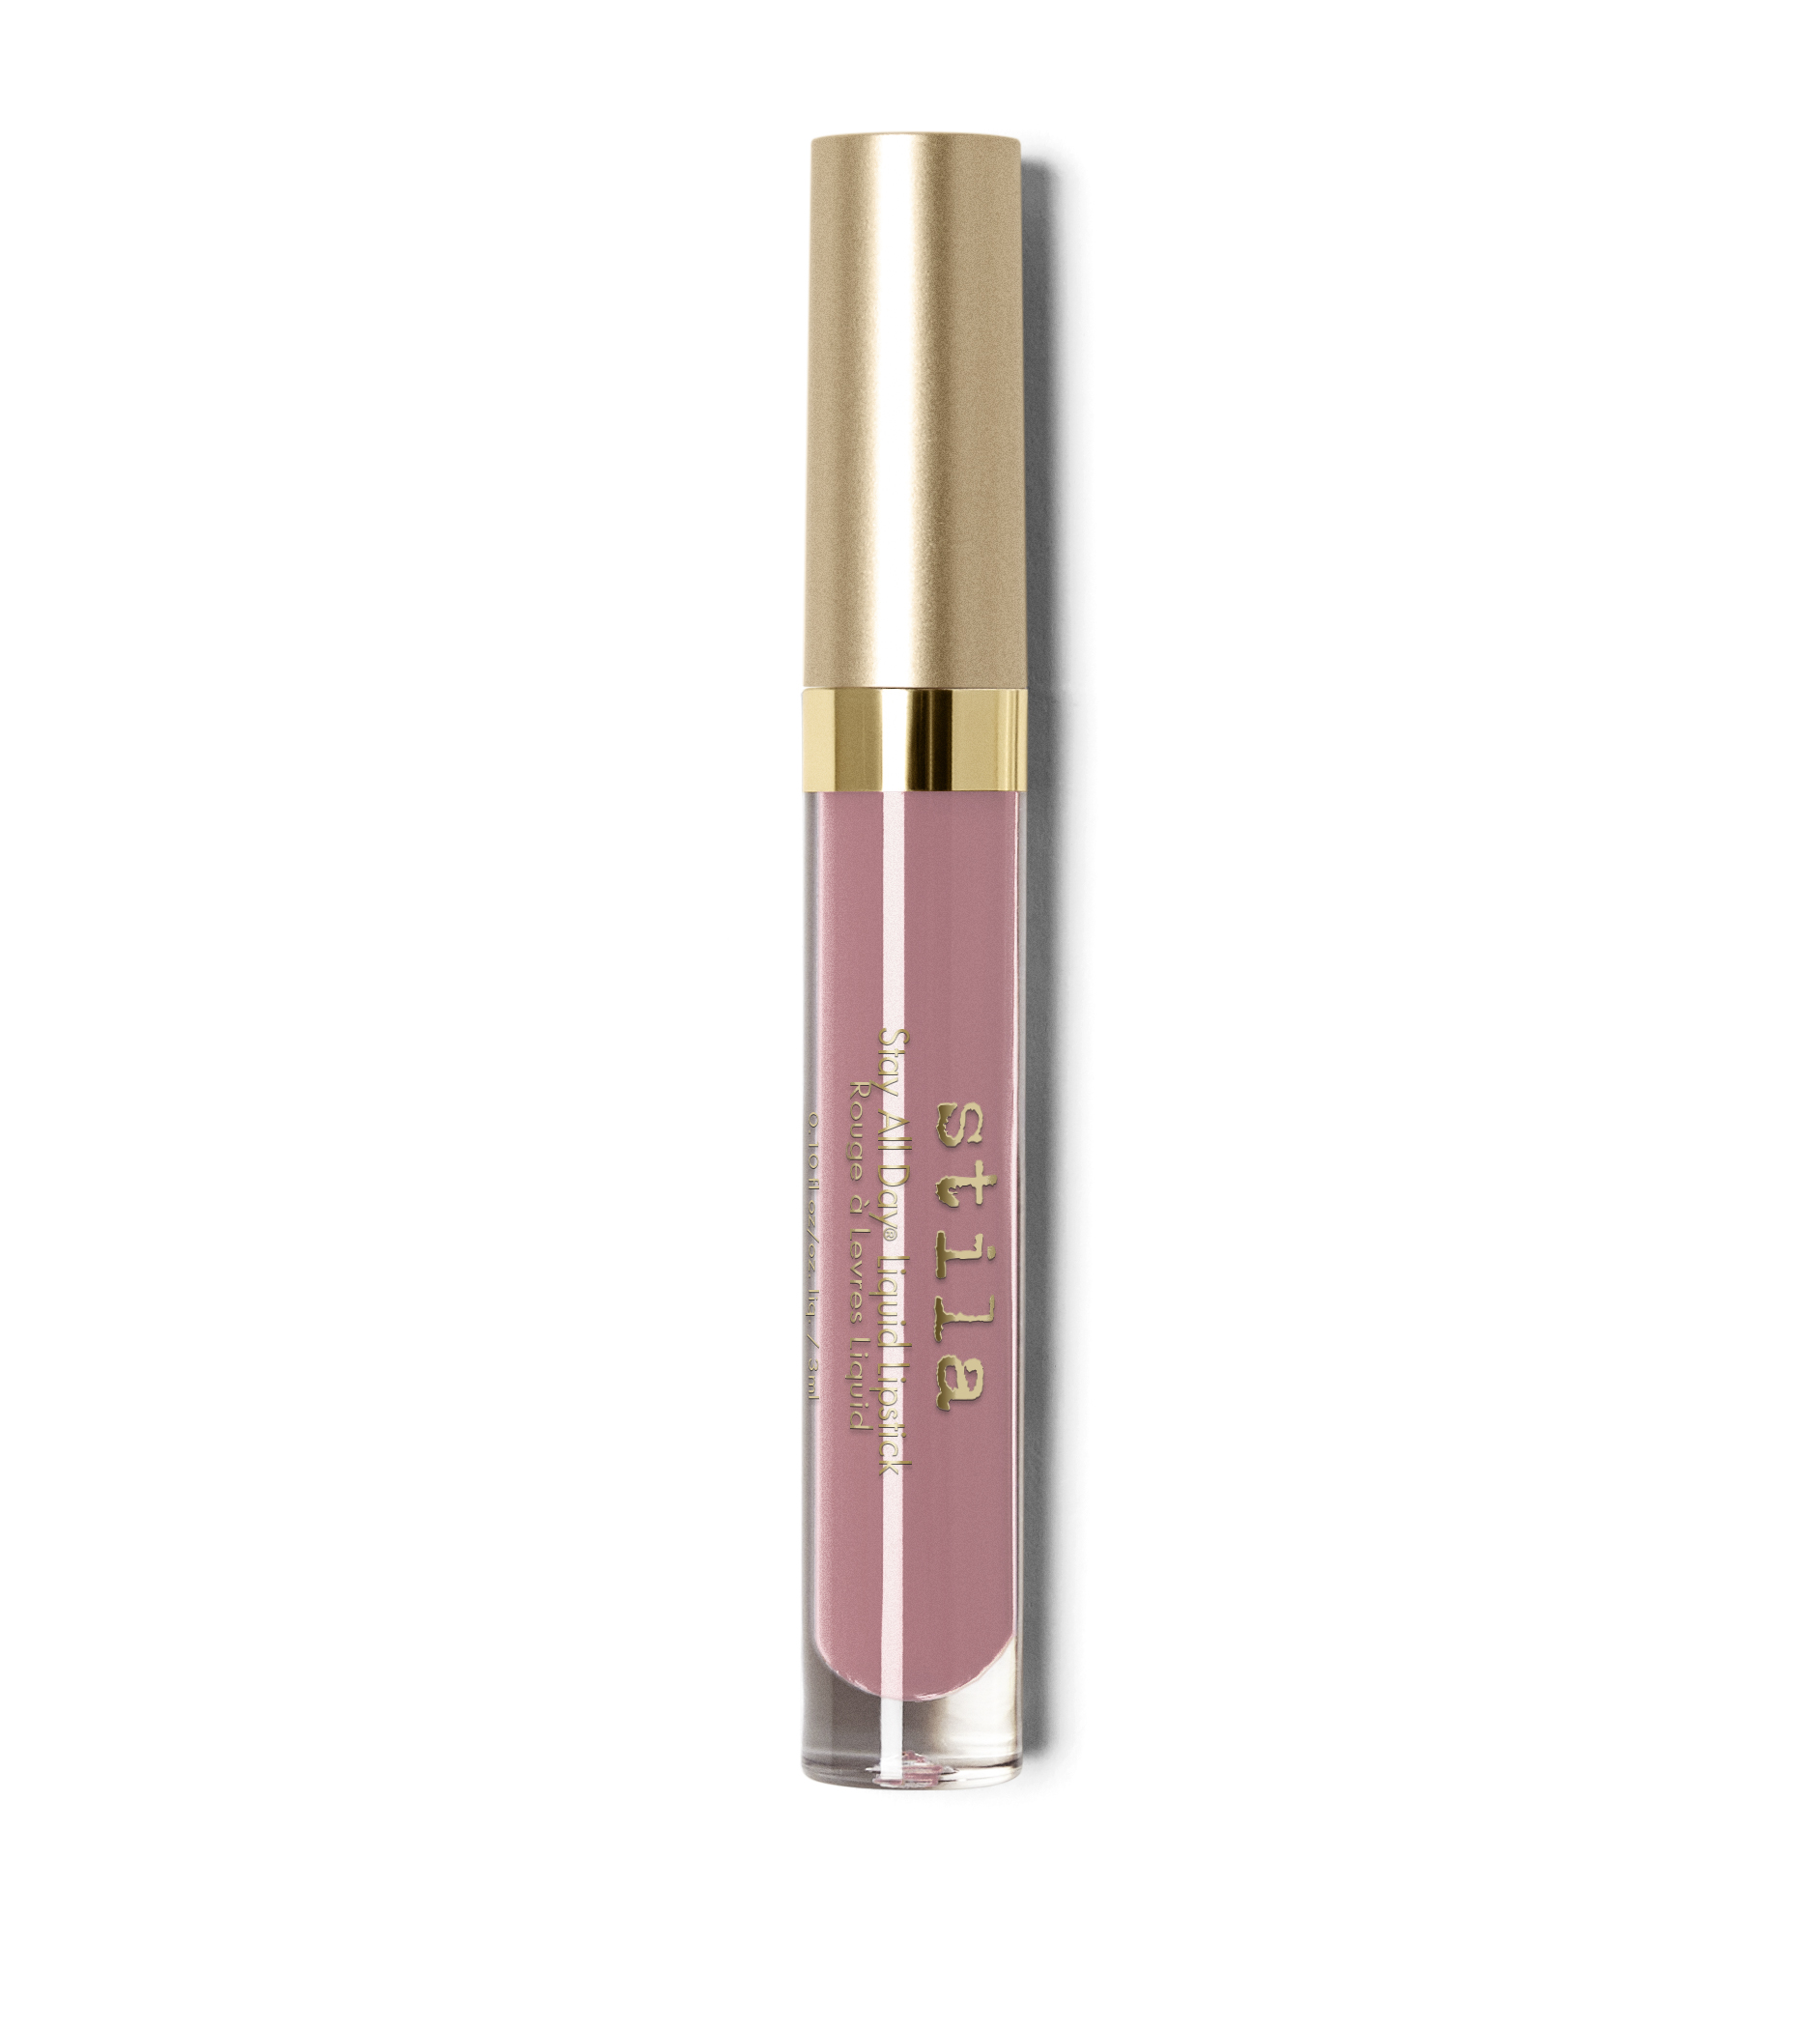 STAY ALL DAY SHEER LIQUID LIPSTICK